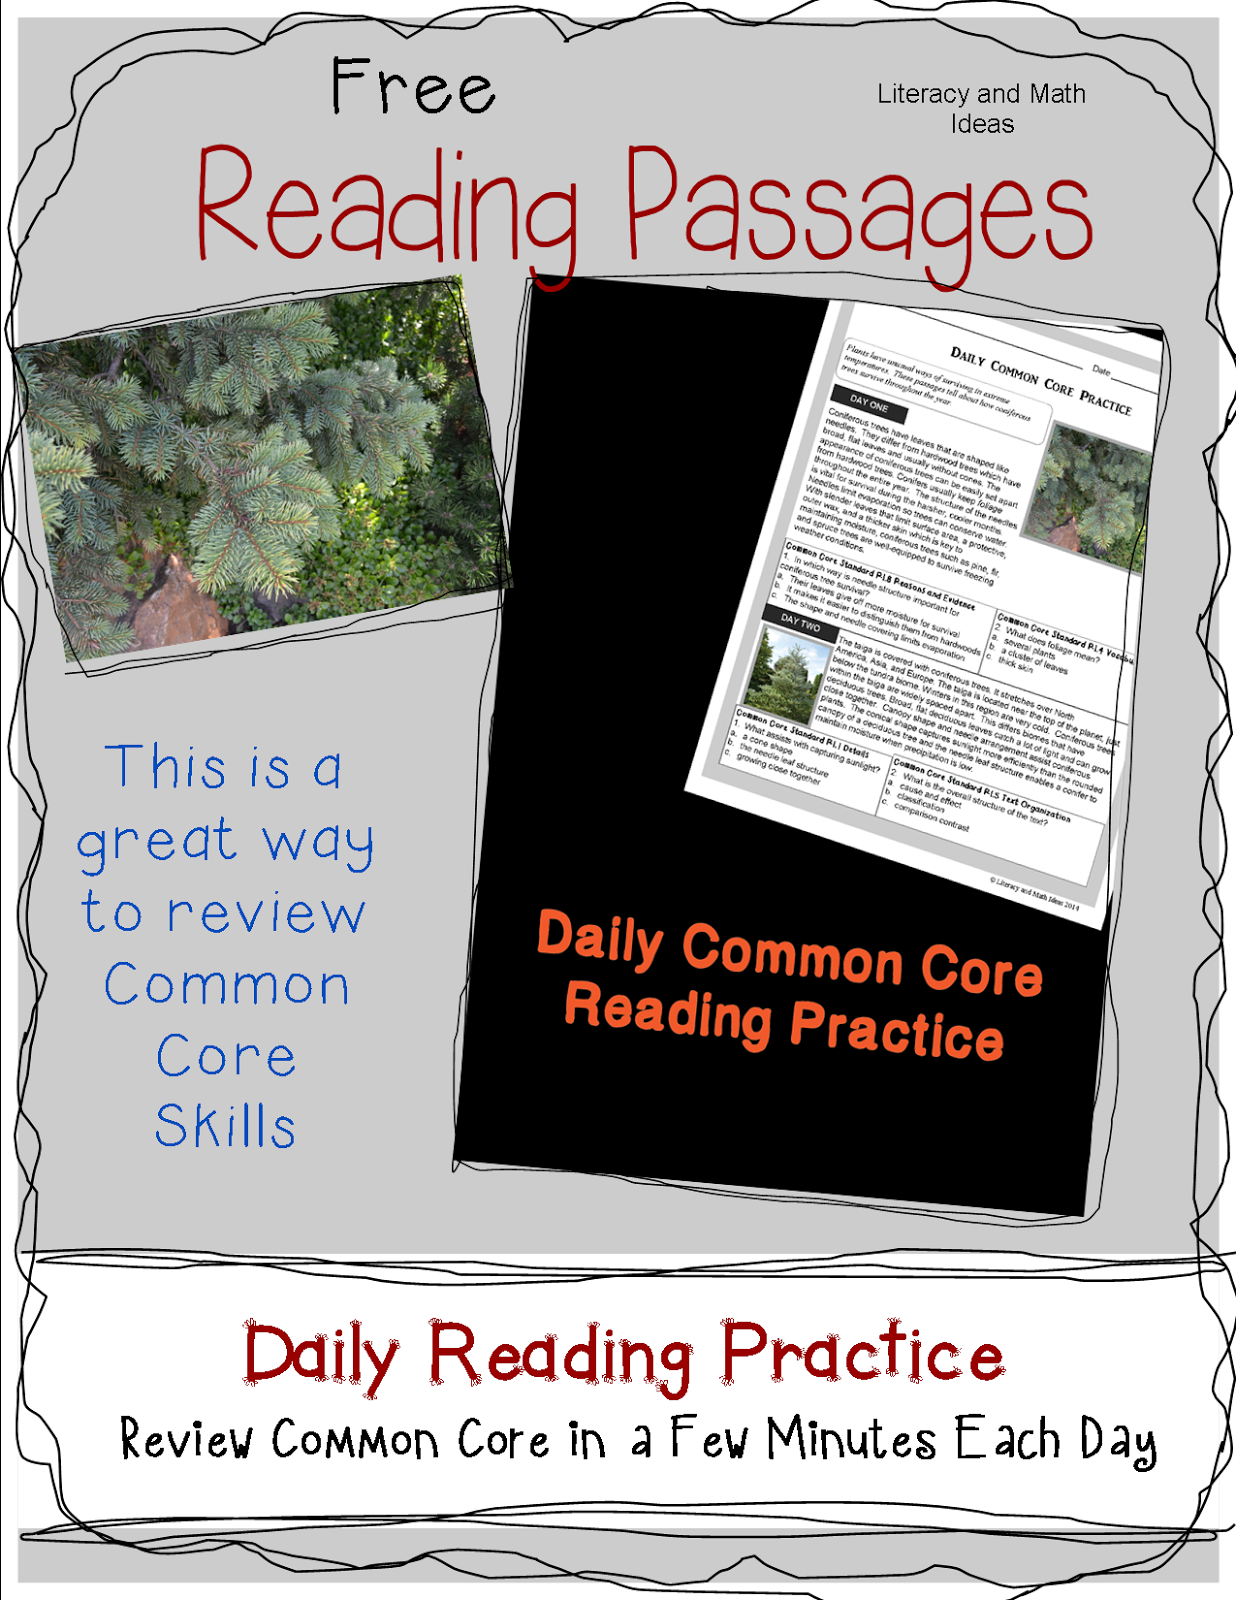 Worksheets Common Core Reading Comprehension Worksheets free daily common core reading passages visit literacy and math ideas to access this